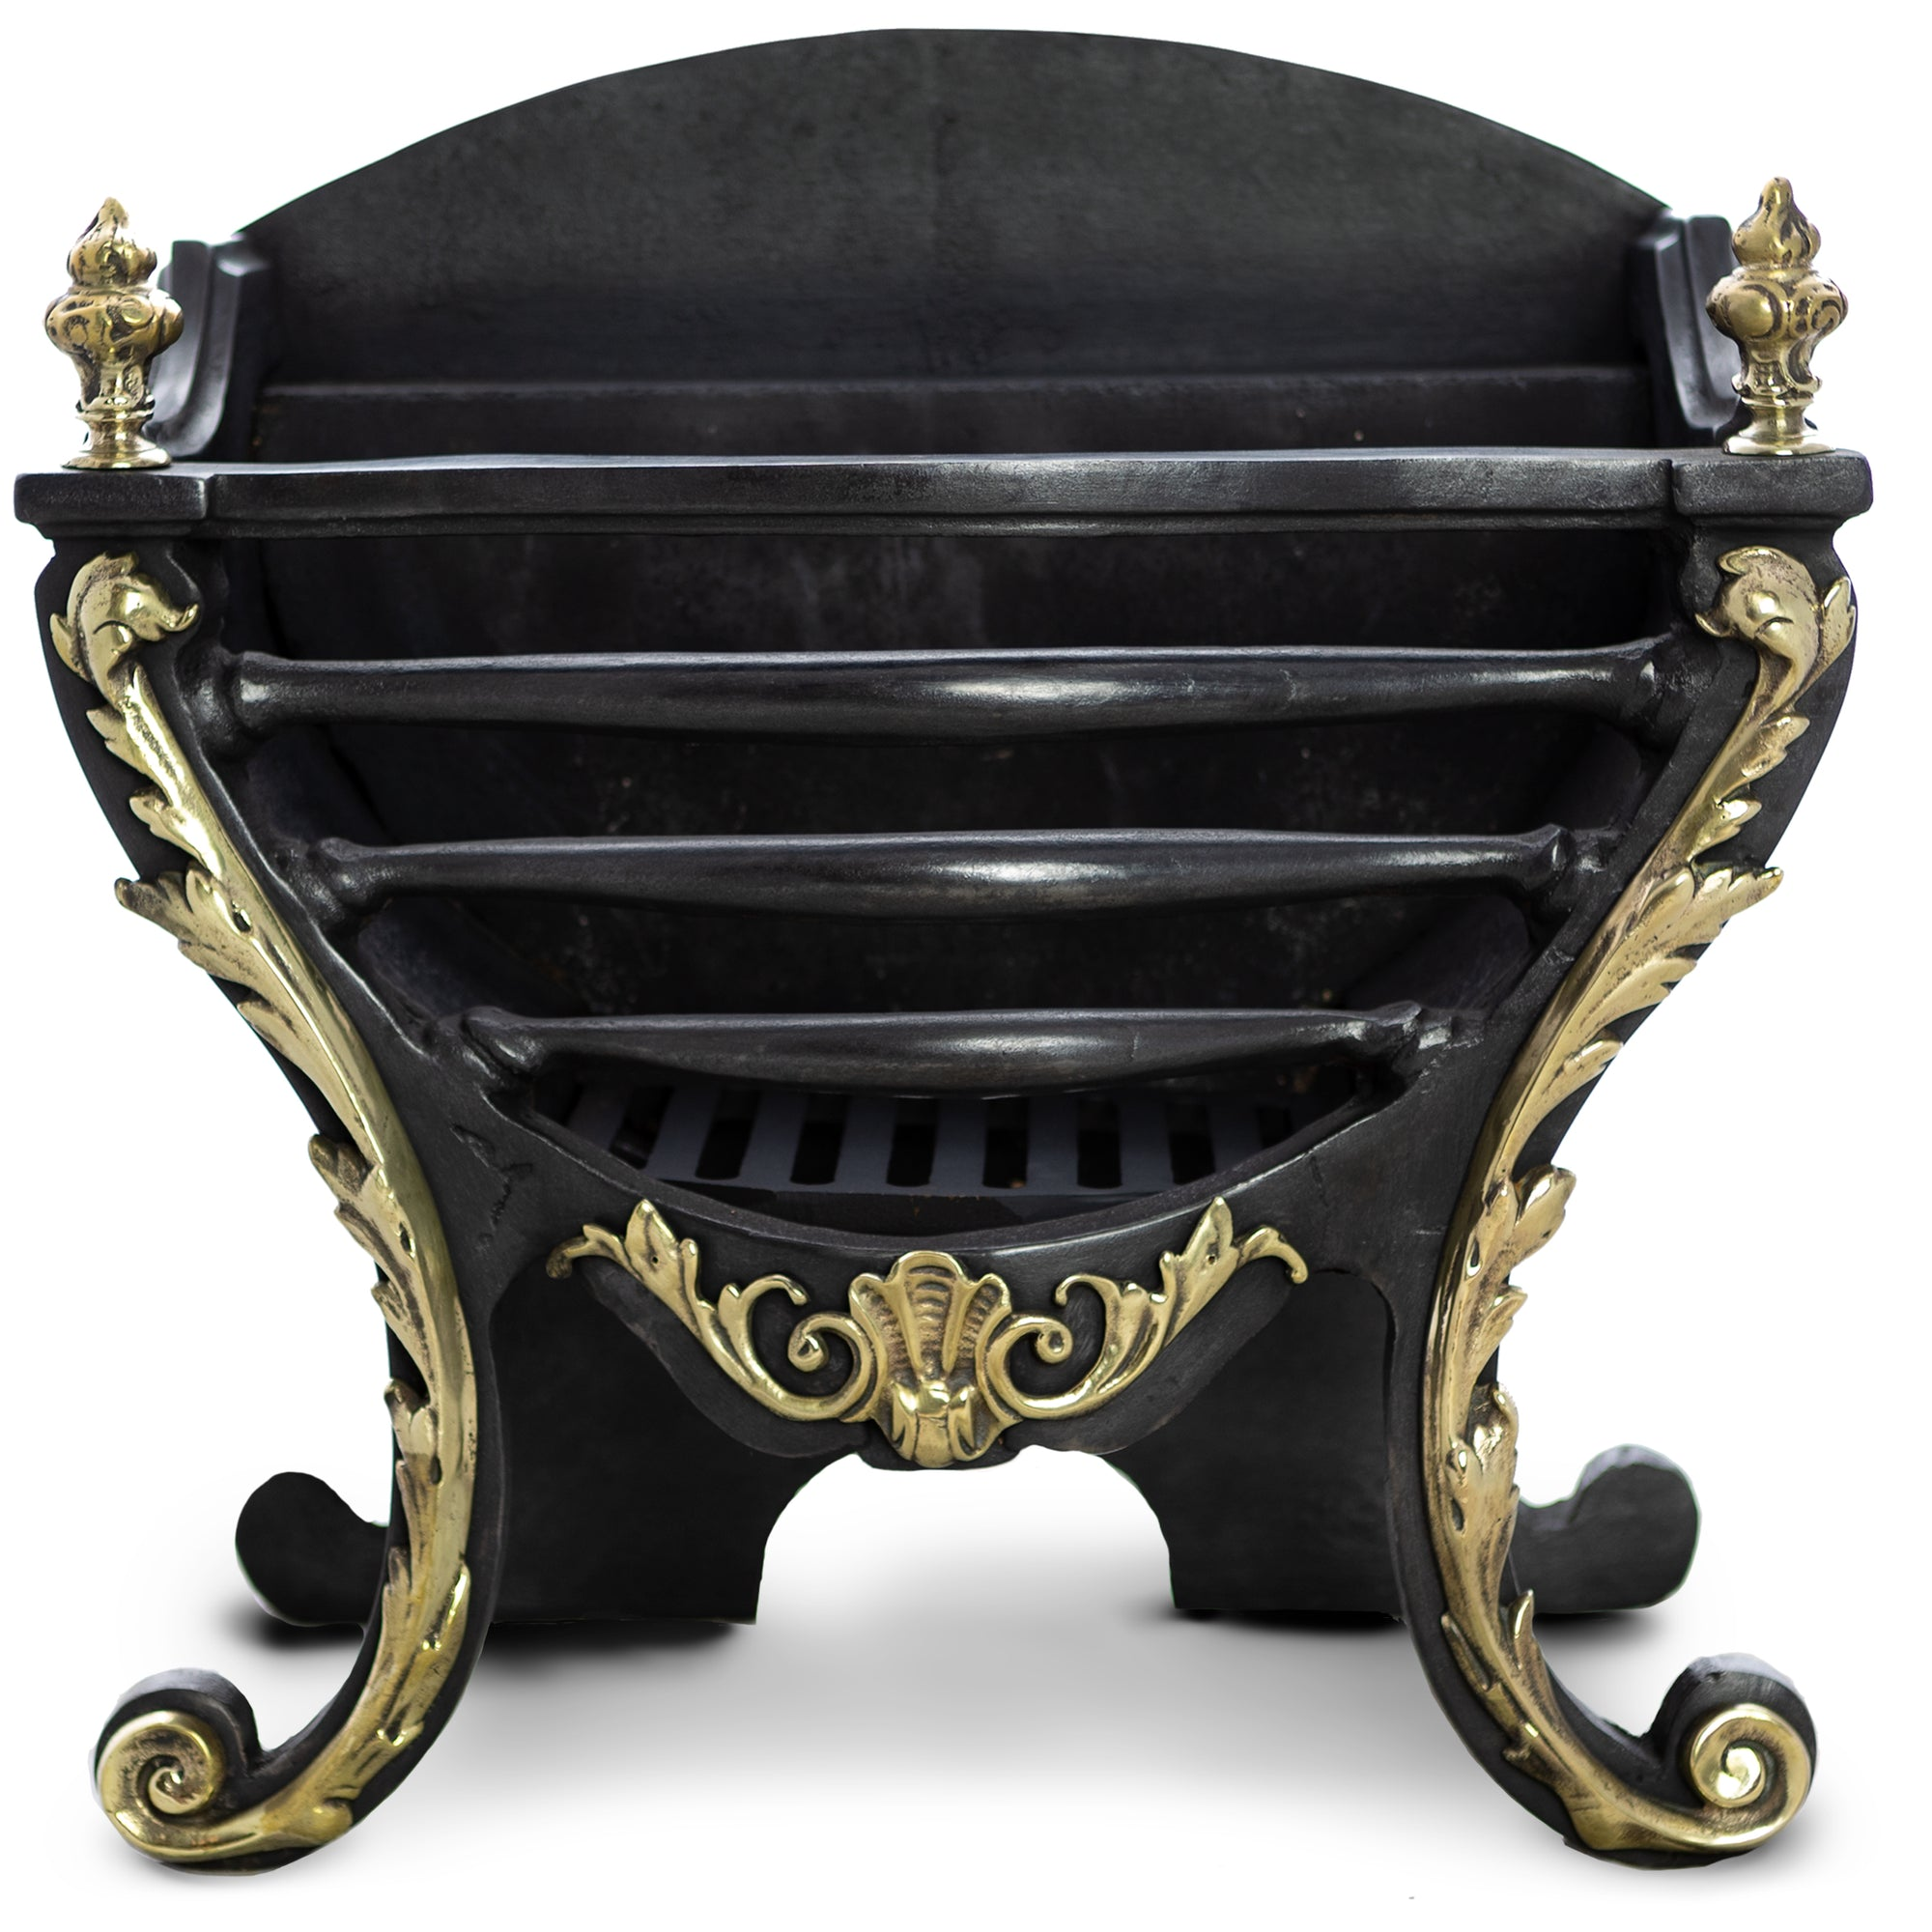 Antique Victorian Fire Basket With Decorative Ornate Brass | The Architectural Forum